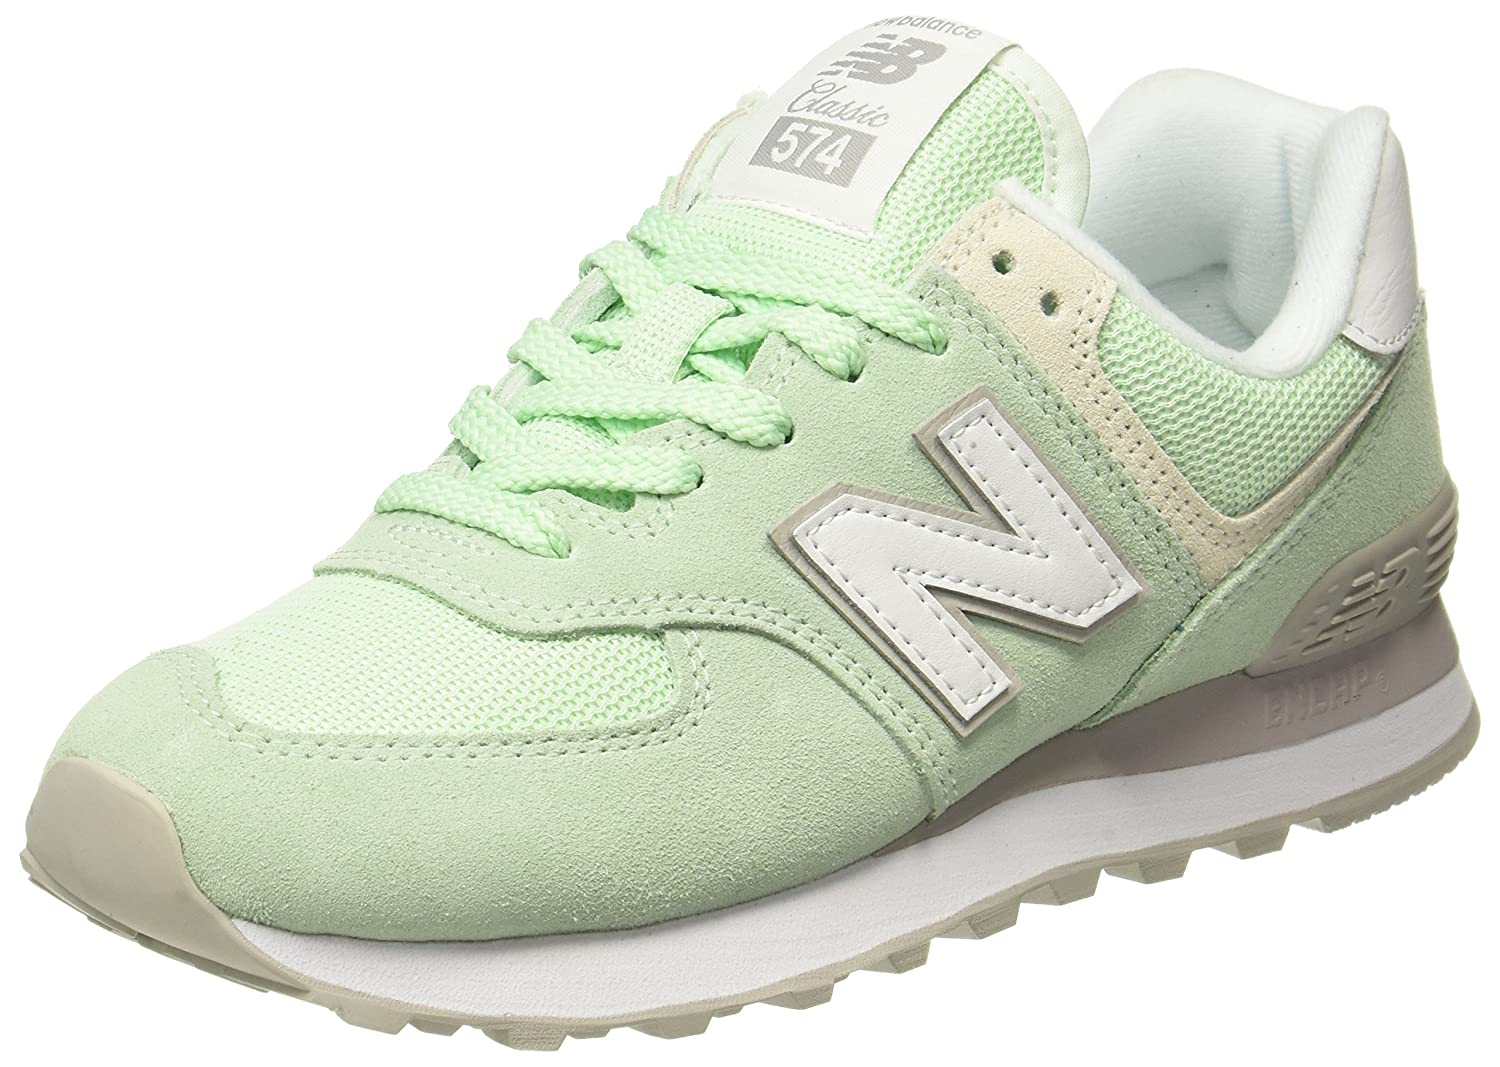 New Balance Wl574, Bottes Bottes Classiques Femme Multicolore B00GXAIMZ6 Femme (Lime) 698f01b - reprogrammed.space